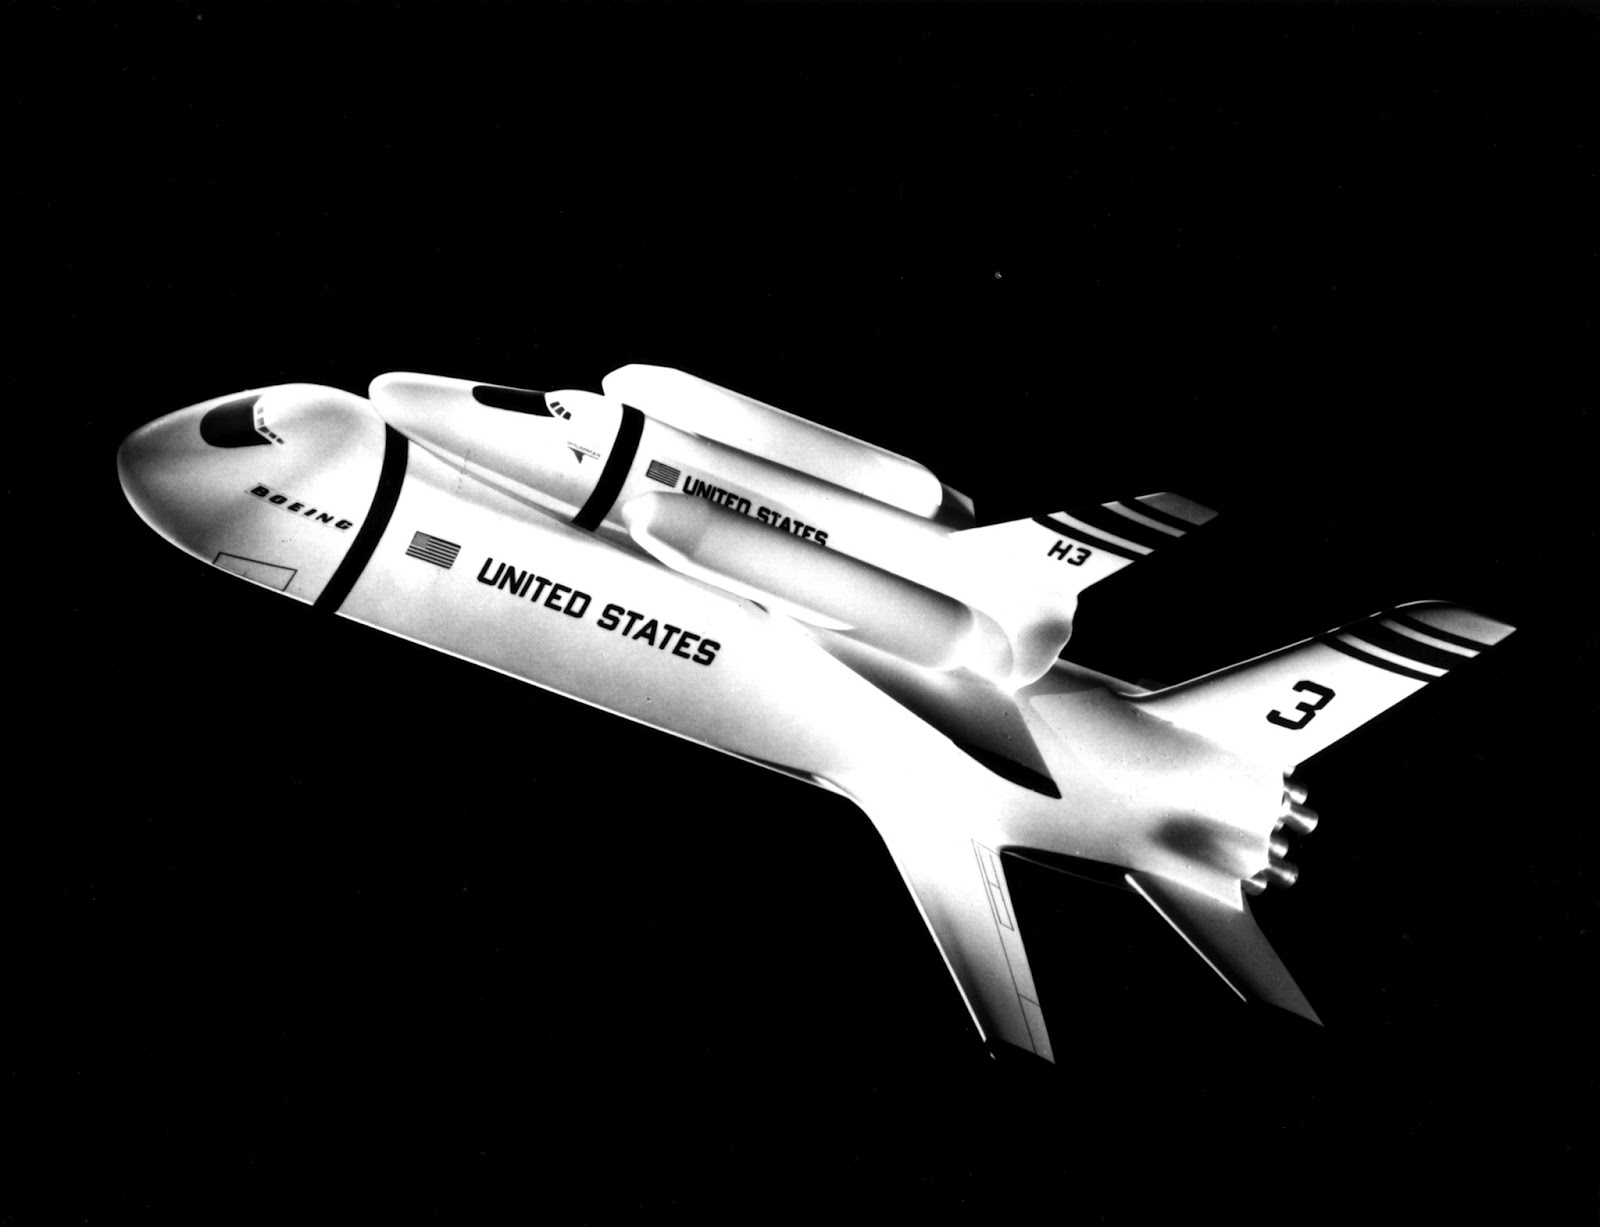 Early Space Shuttle Designs - Pics about space